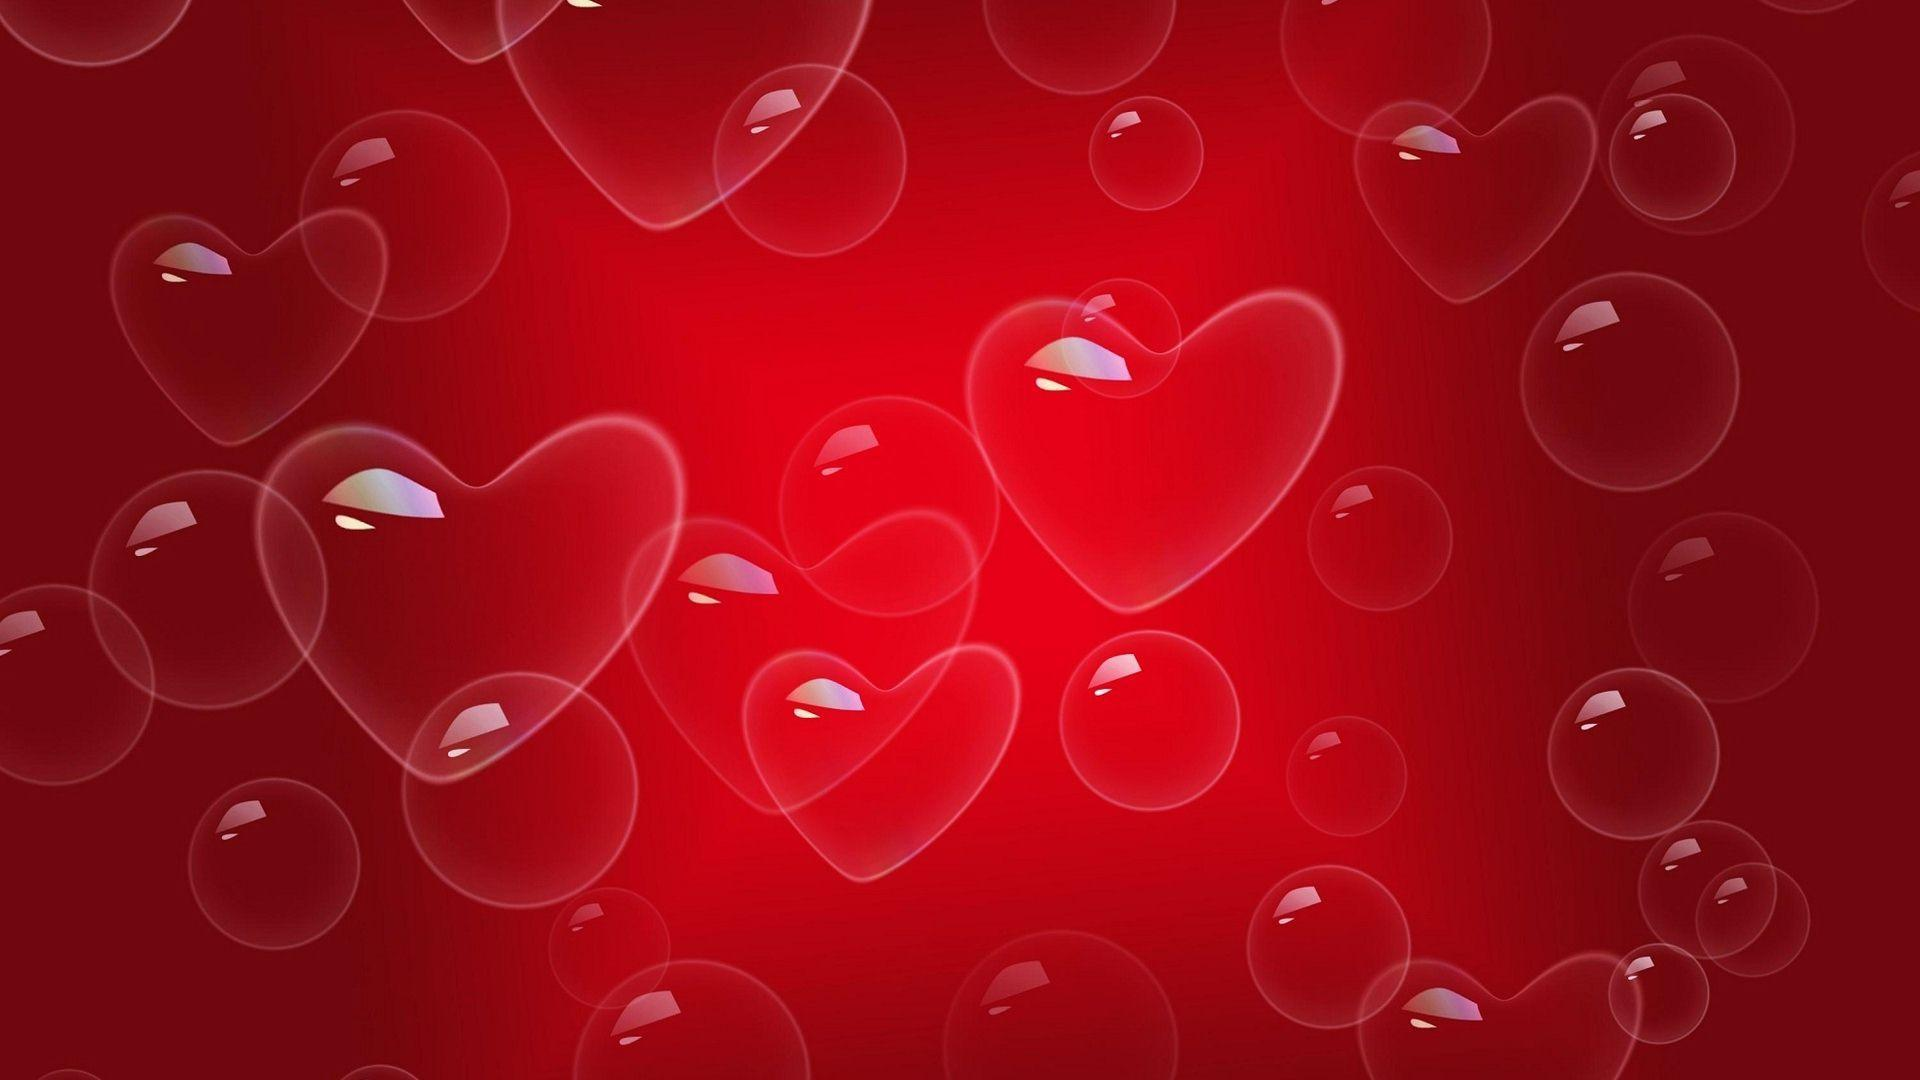 heart love red background - photo #3